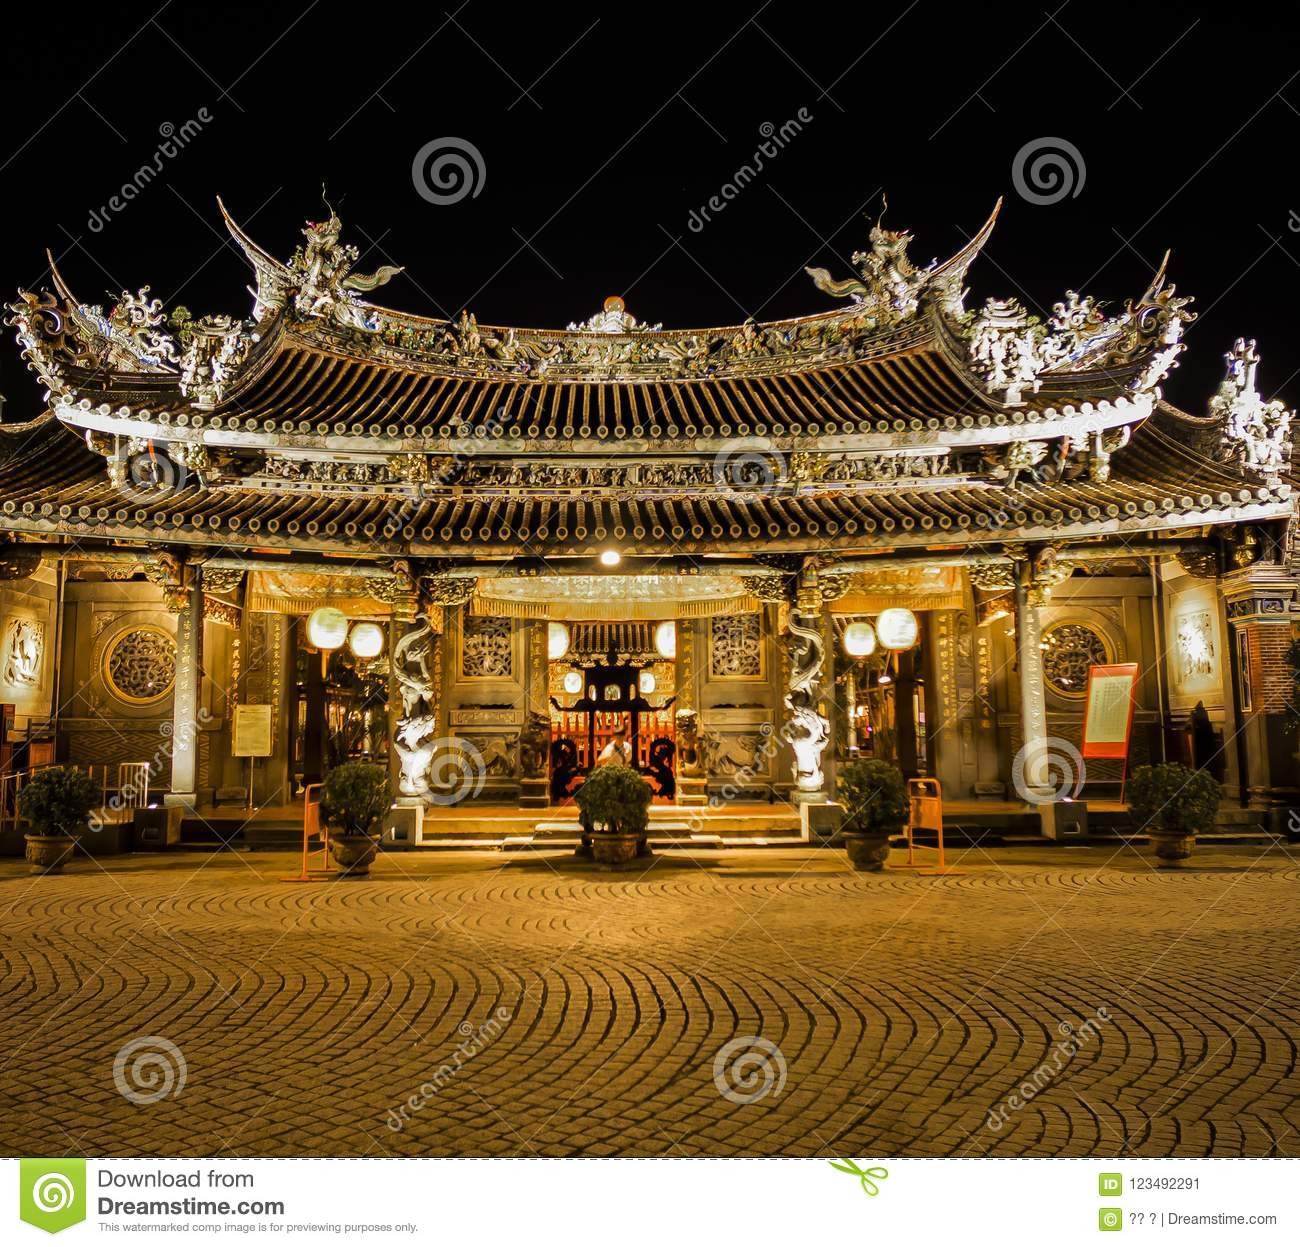 The famous temple of Taiwan